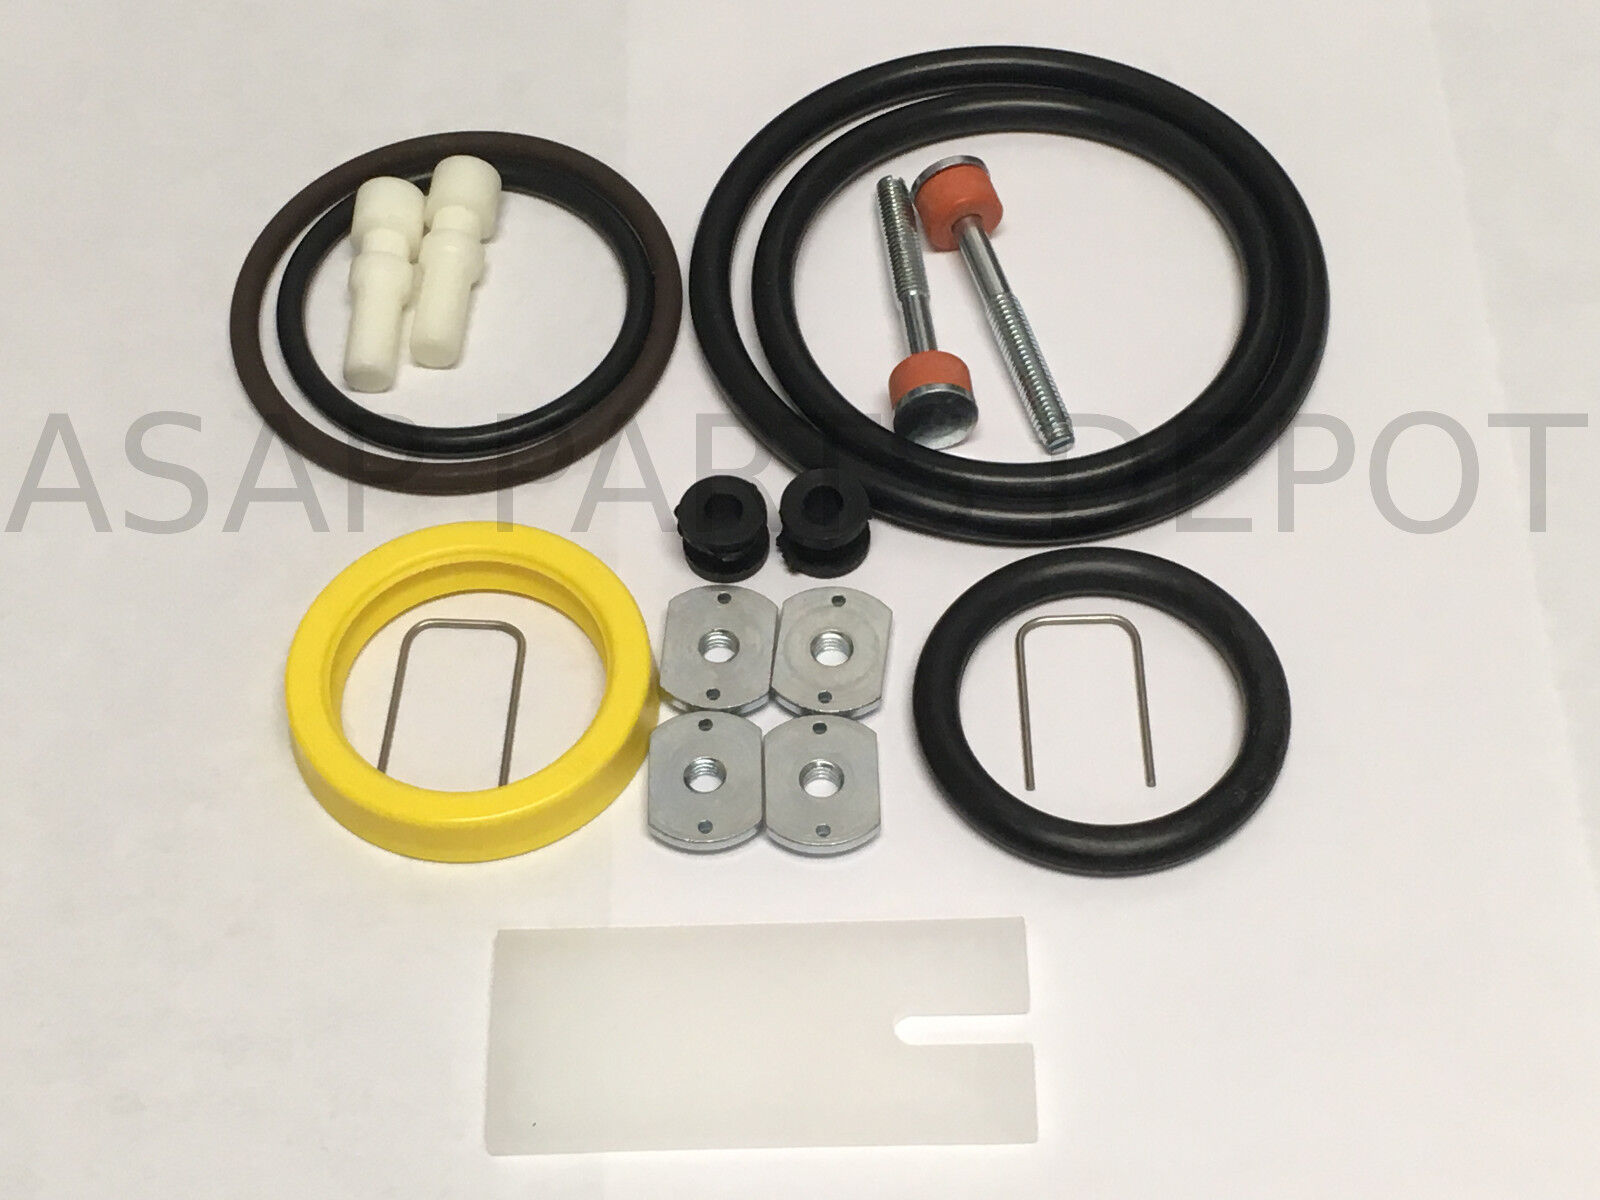 ASAP Aftermarket for Graco 246918 3:1 Ratio Fire Ball 225 Oil Pumps Repair Kit